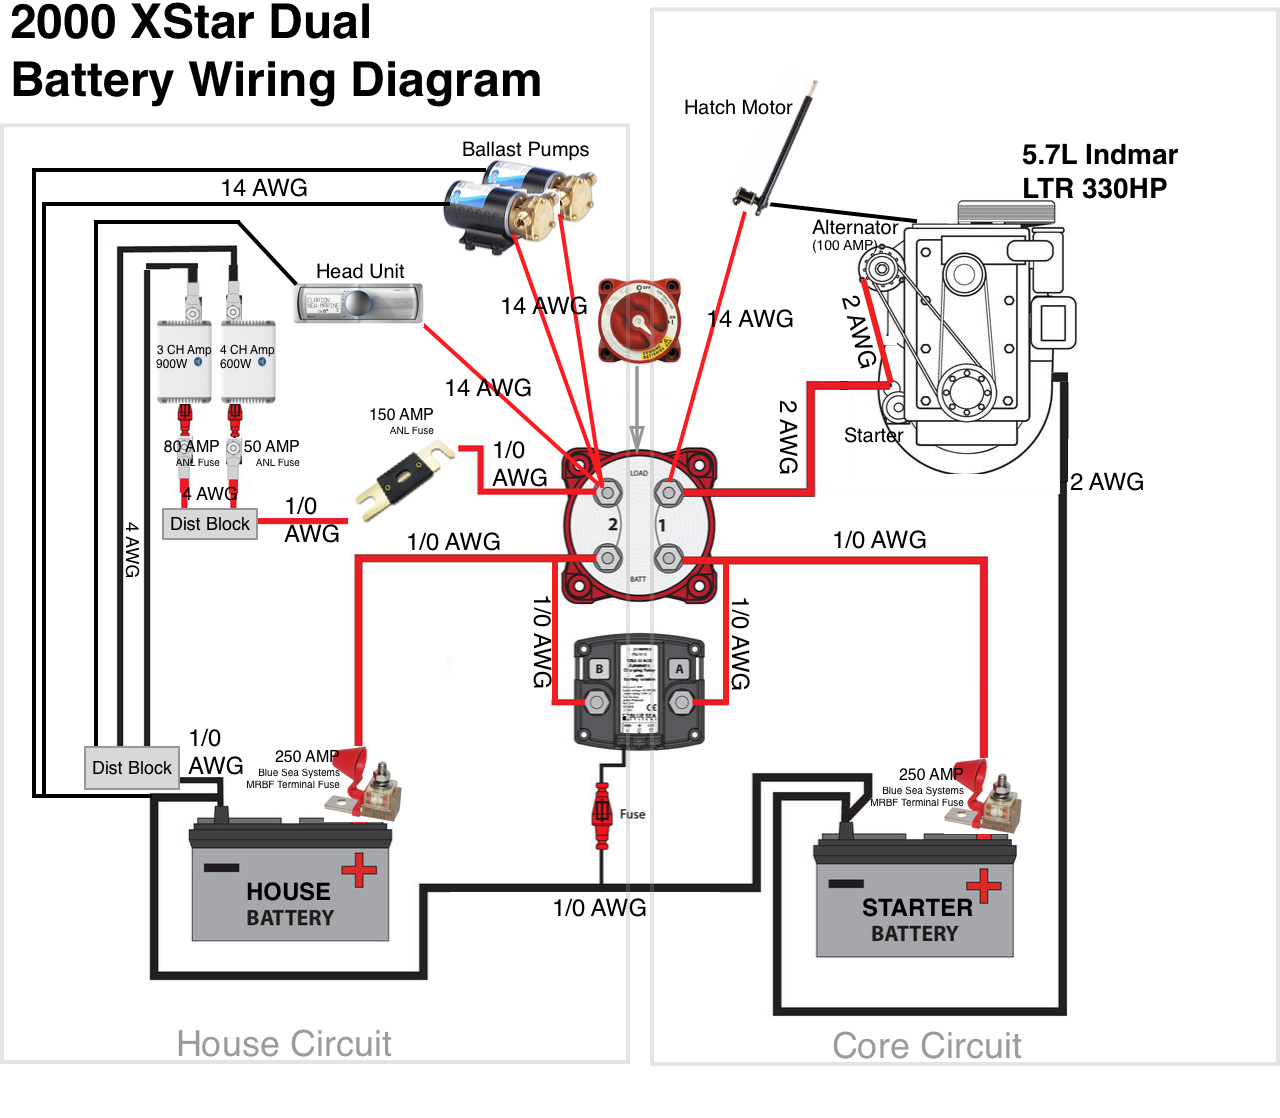 Dual Battery Boat Wiring Diagram from static-cdn.imageservice.cloud